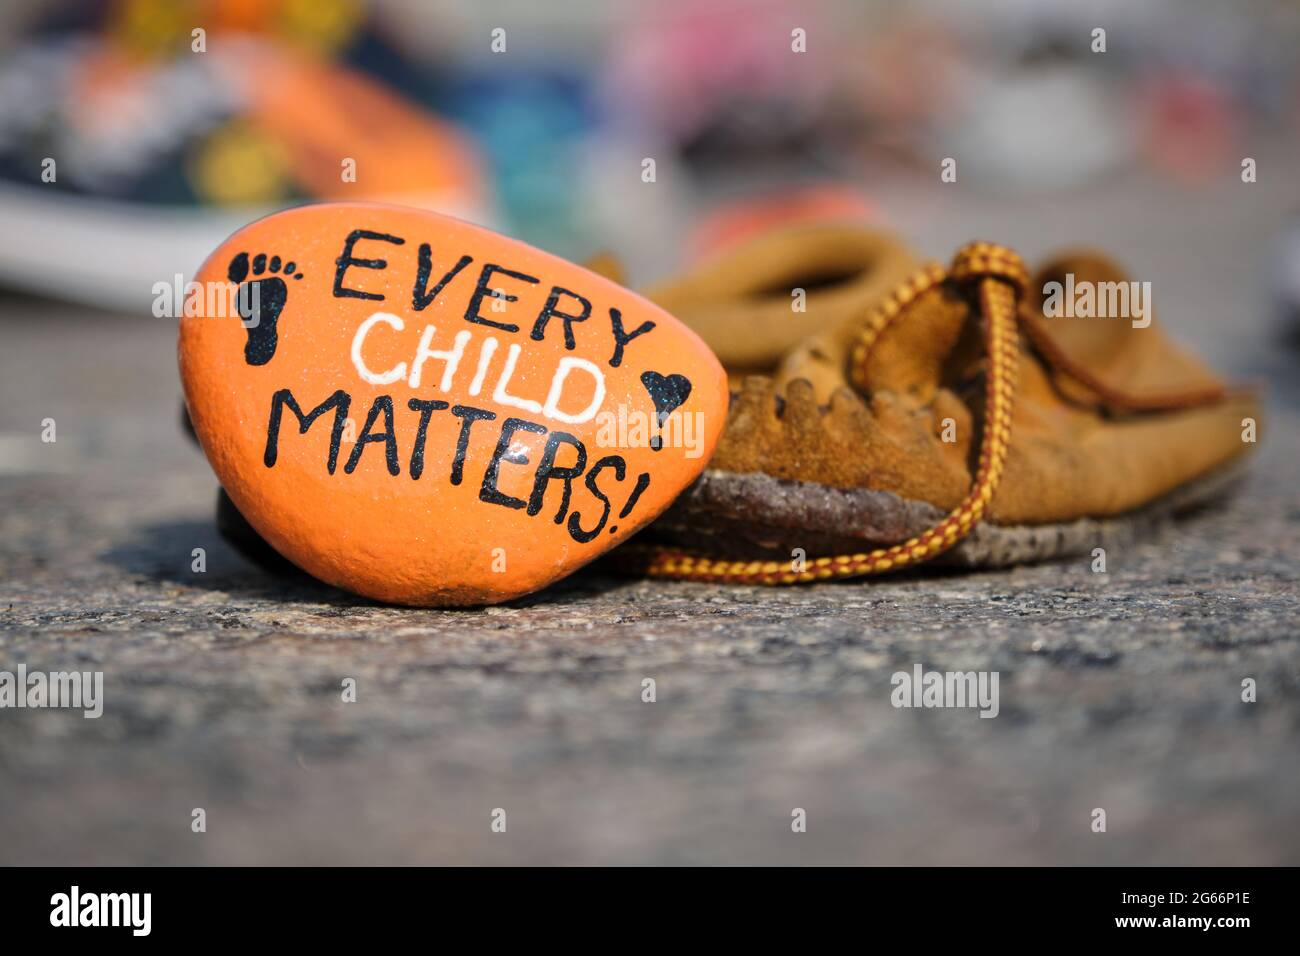 memorial-to-aboriginal-children-whose-remain-found-in-residential-schools-in-canada-child-moccasin-and-painted-orange-rock-left-in-memory-ottawa-2G66P1E.jpg